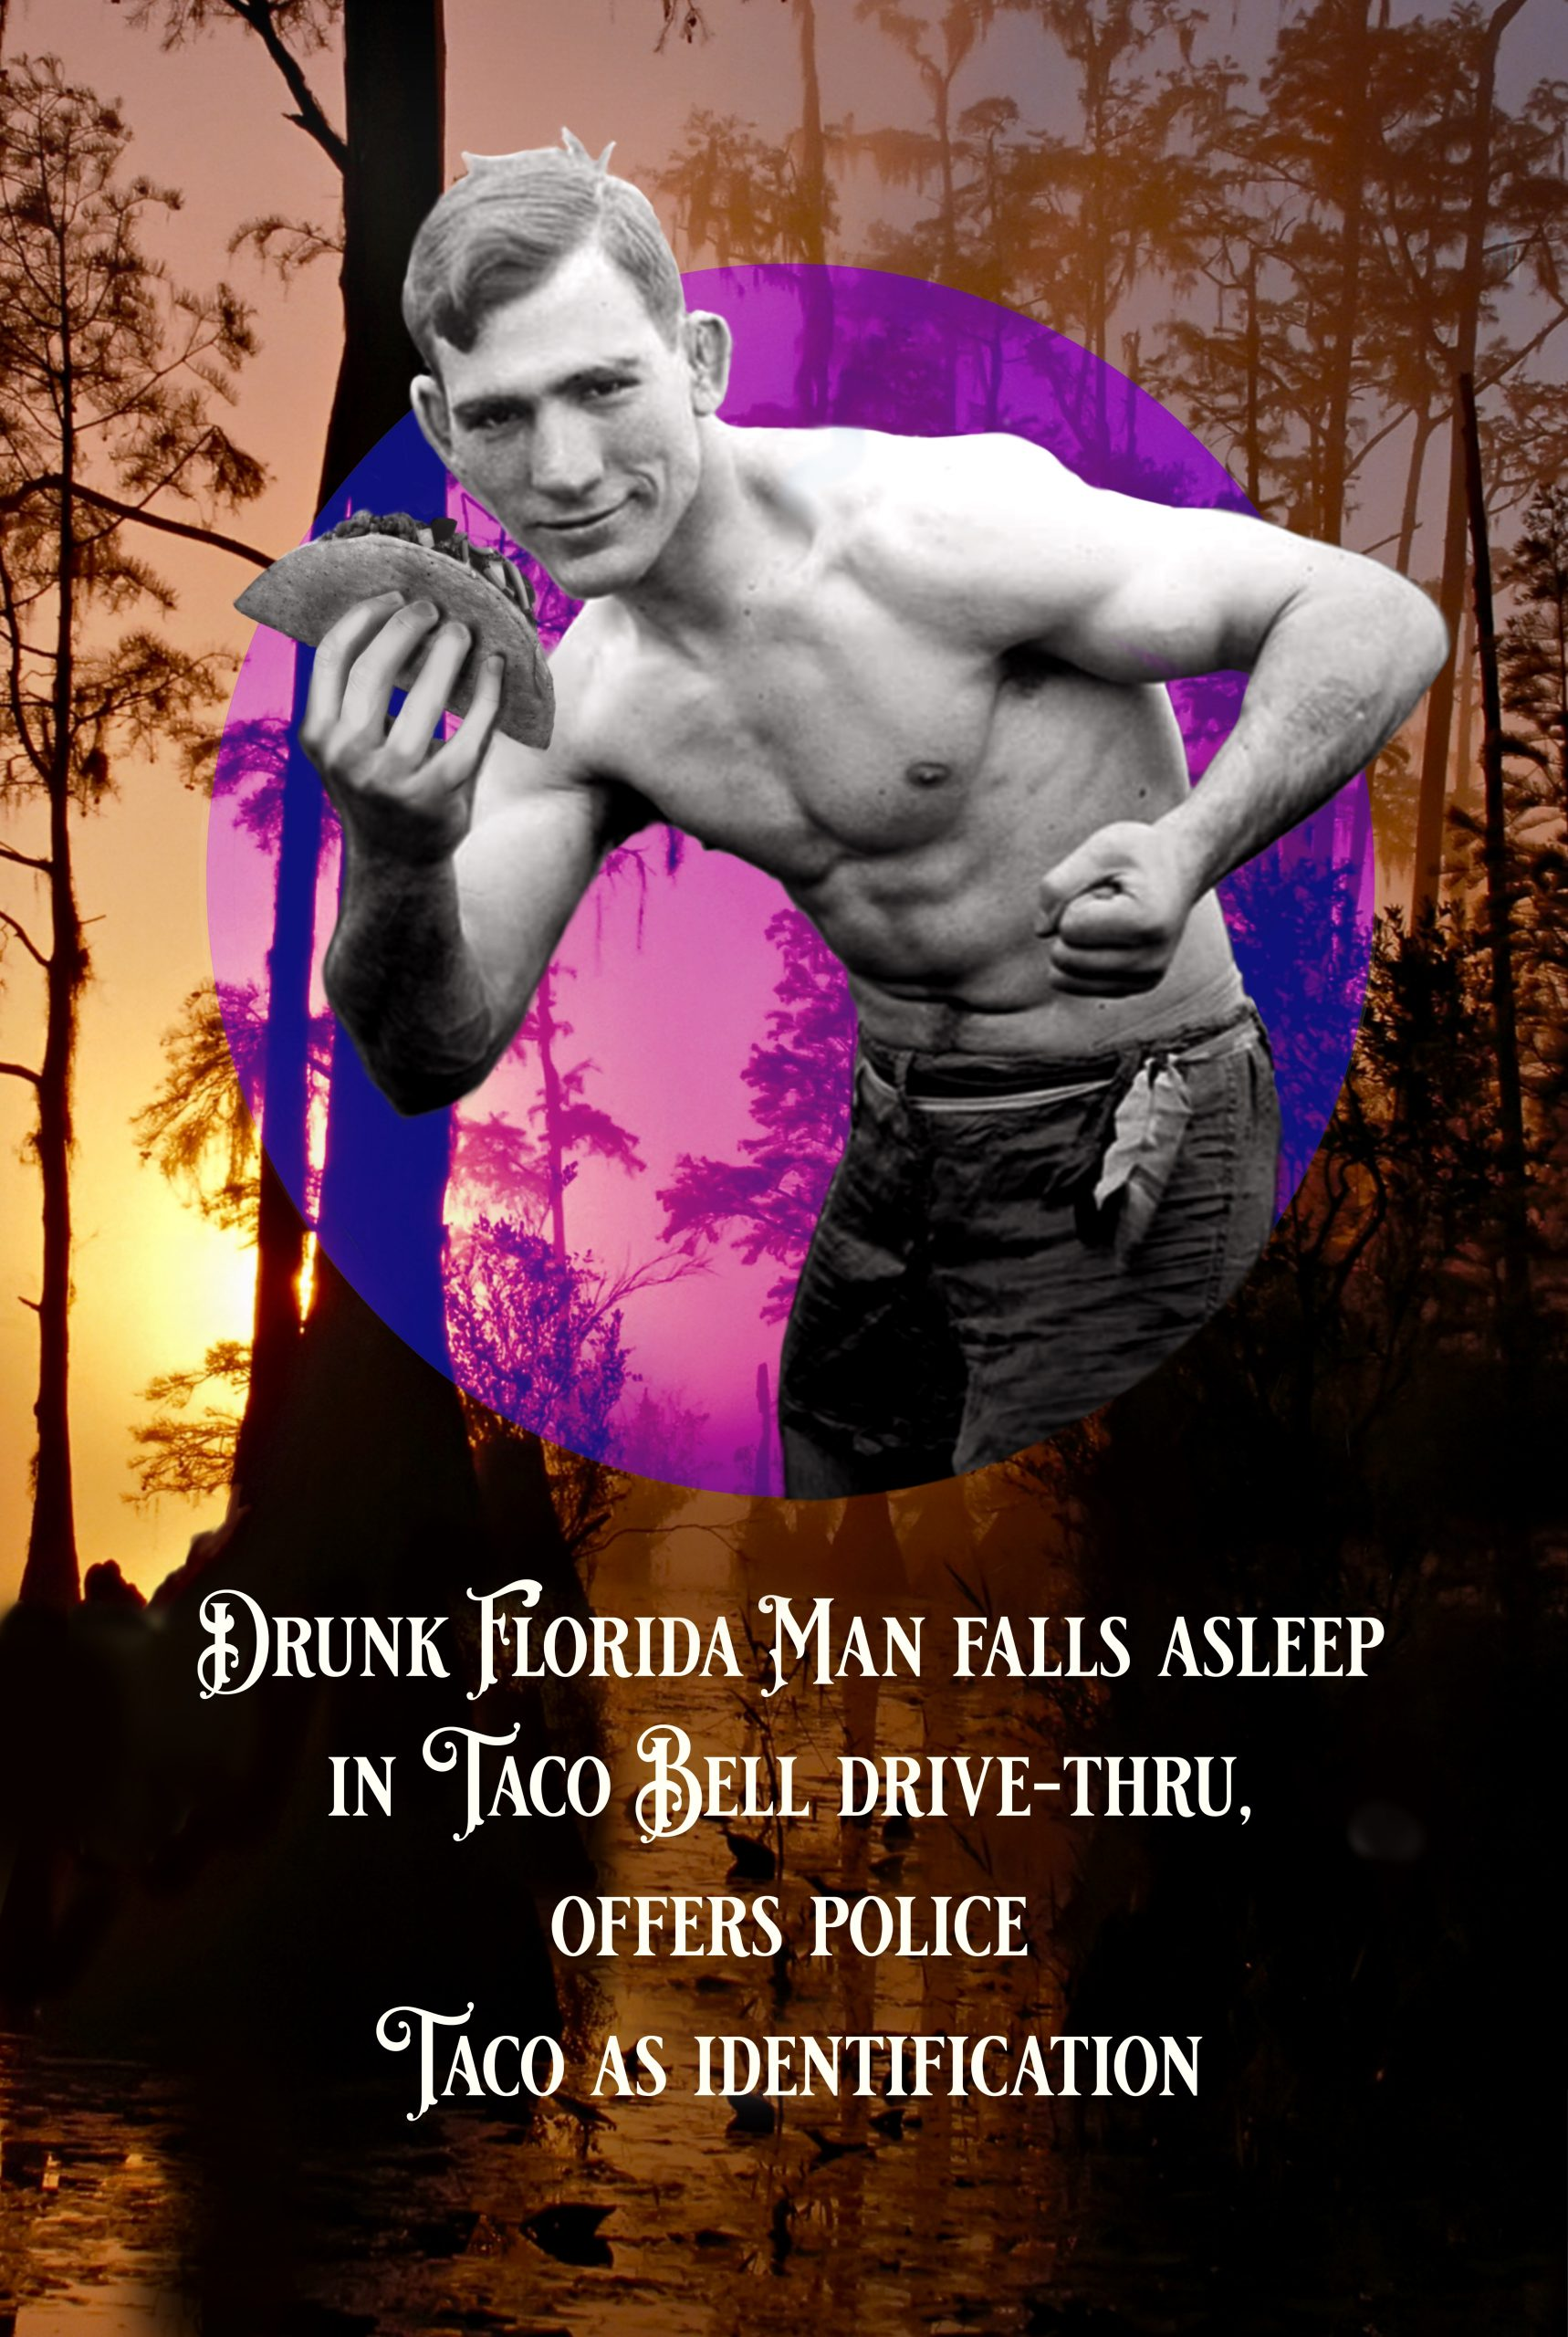 "A Florida Man holds up a taco, against a background of a forest, with the caption ""Drunk Florida Man falls asleep in Taco Bell drive-thru, offers police taco as identification"""